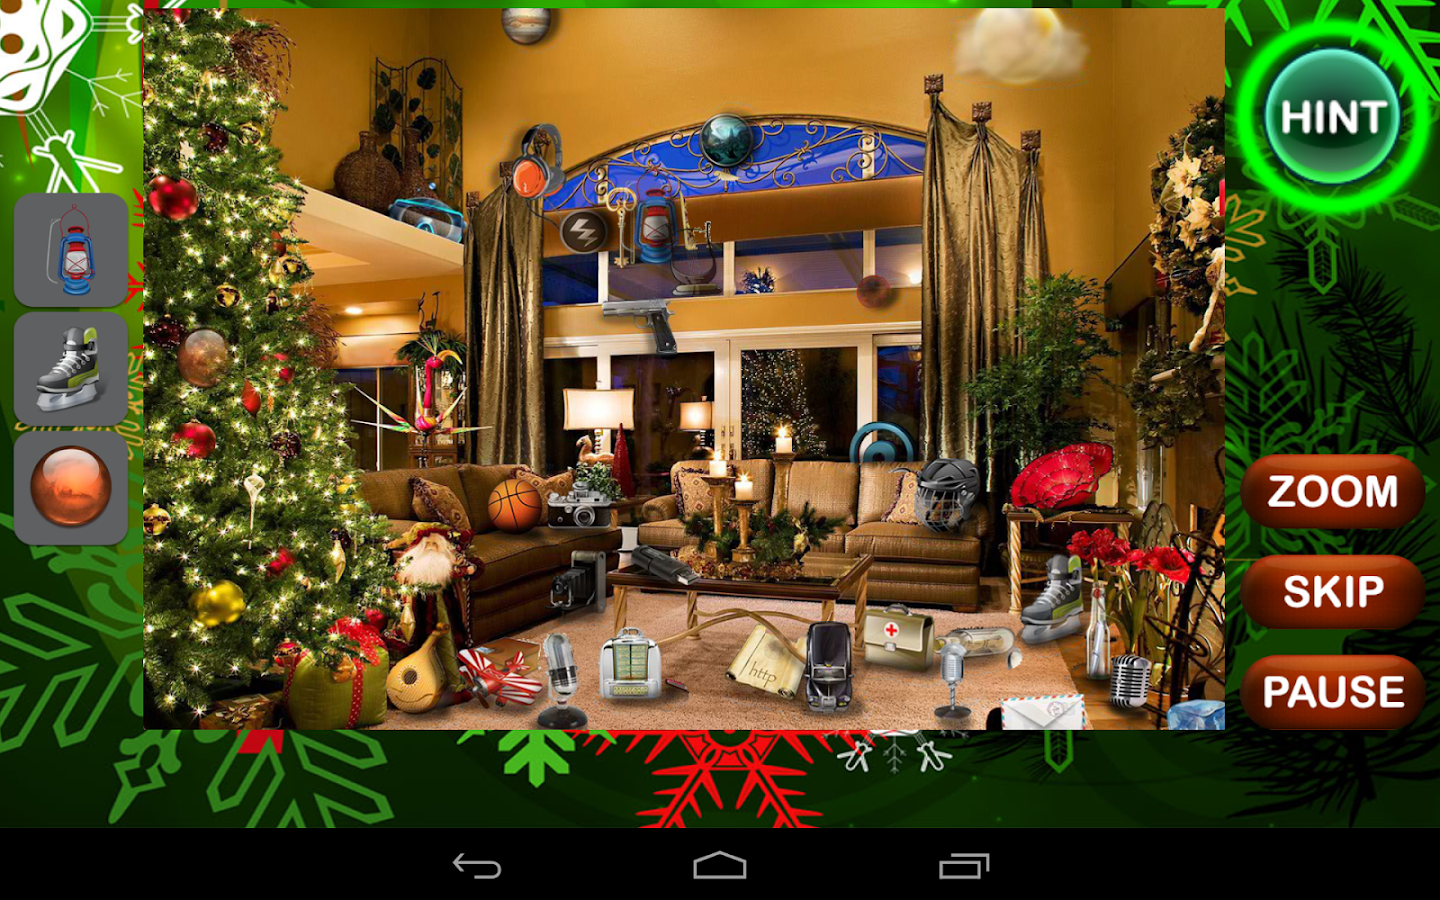 christmas hidden objects is xmas themed hidden object game enjoy ...